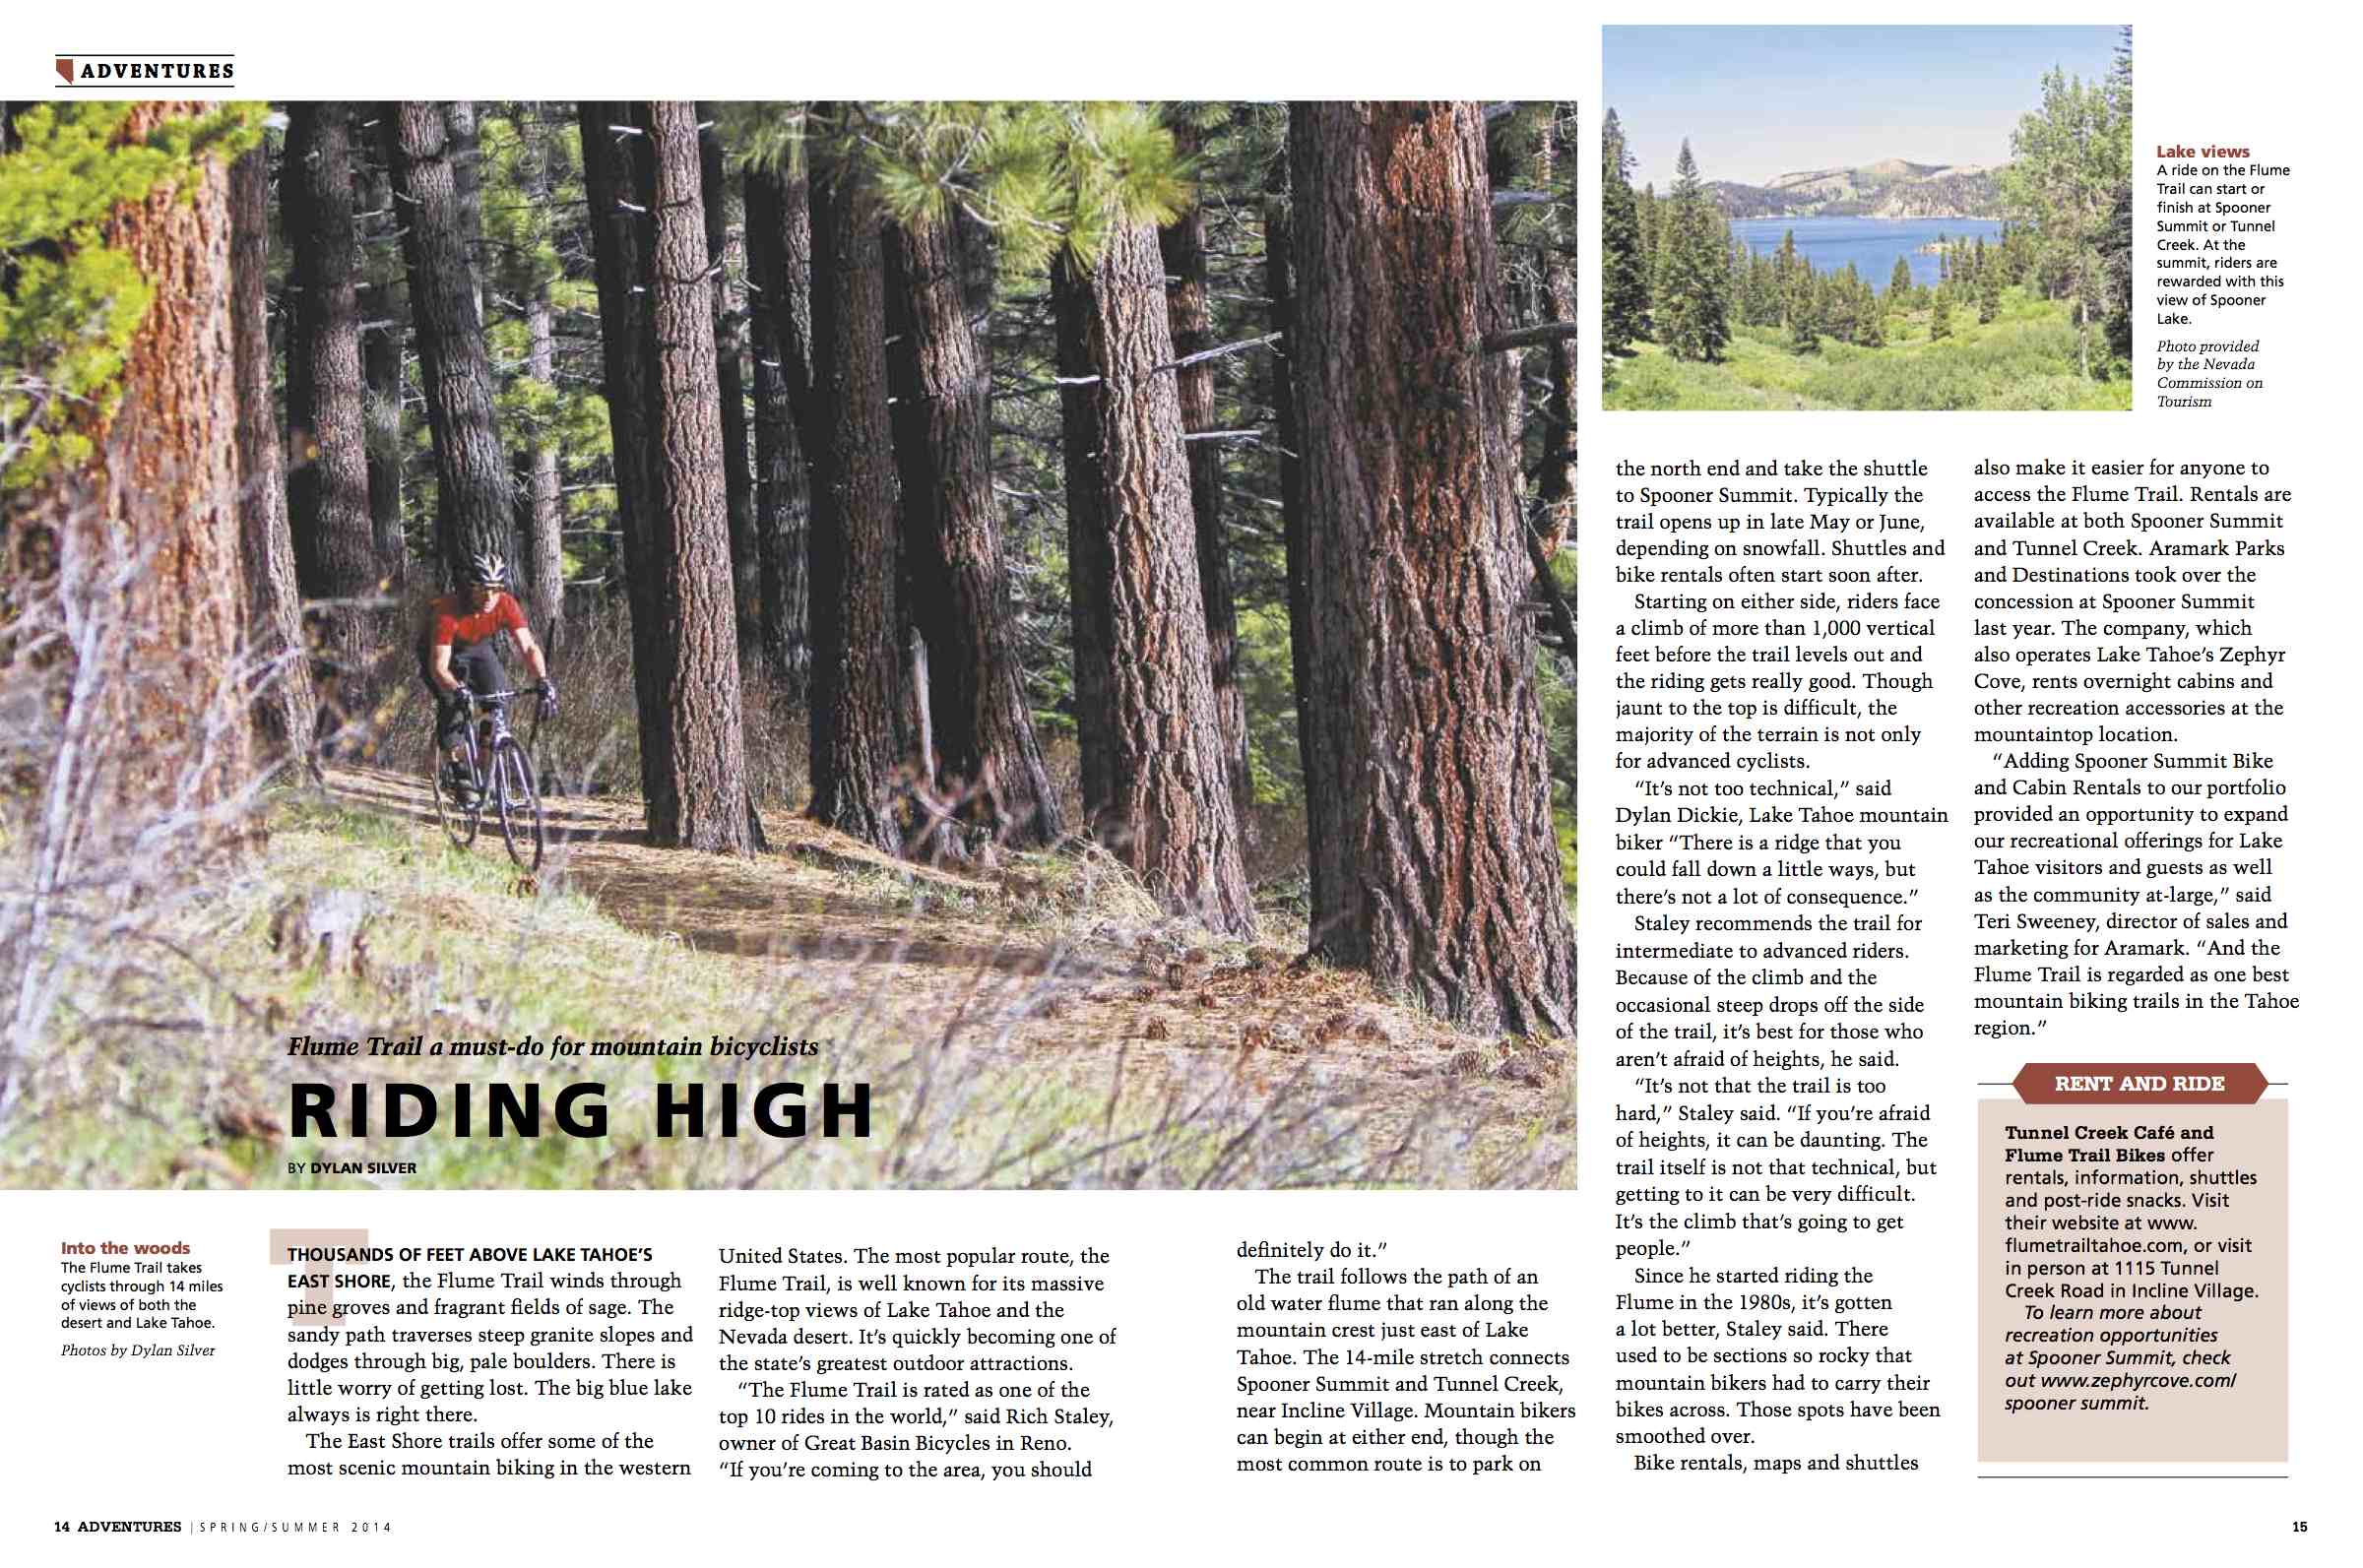 Riding High —  Lake Tahoe's Flume Trail a must-do for mountain bikers  / Gannette / April, 2014